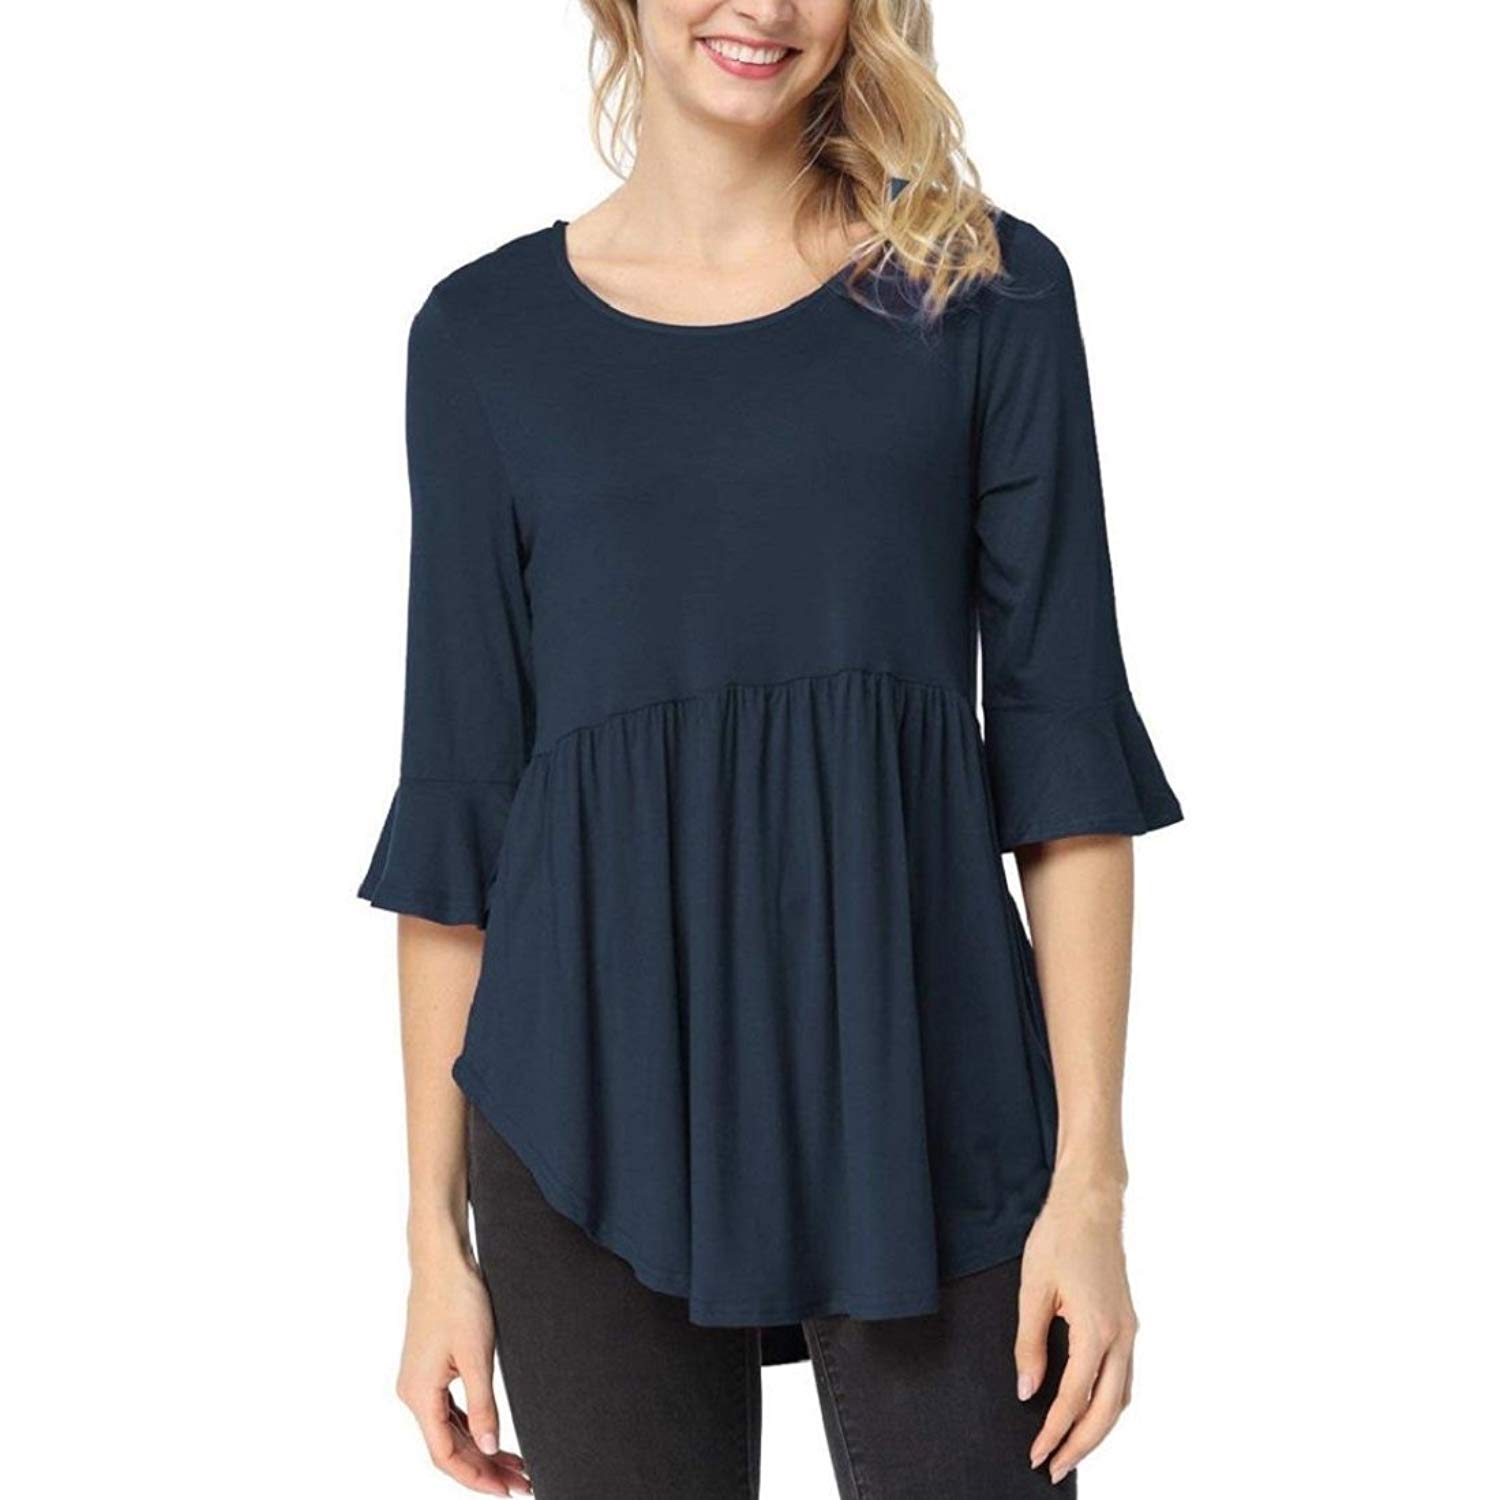 90033674a21 Get Quotations · GONKOMA Womens Tops Womens Blouse T-Shirt Ruffle Half  Sleeve Round Neck Tops Casual Blouse